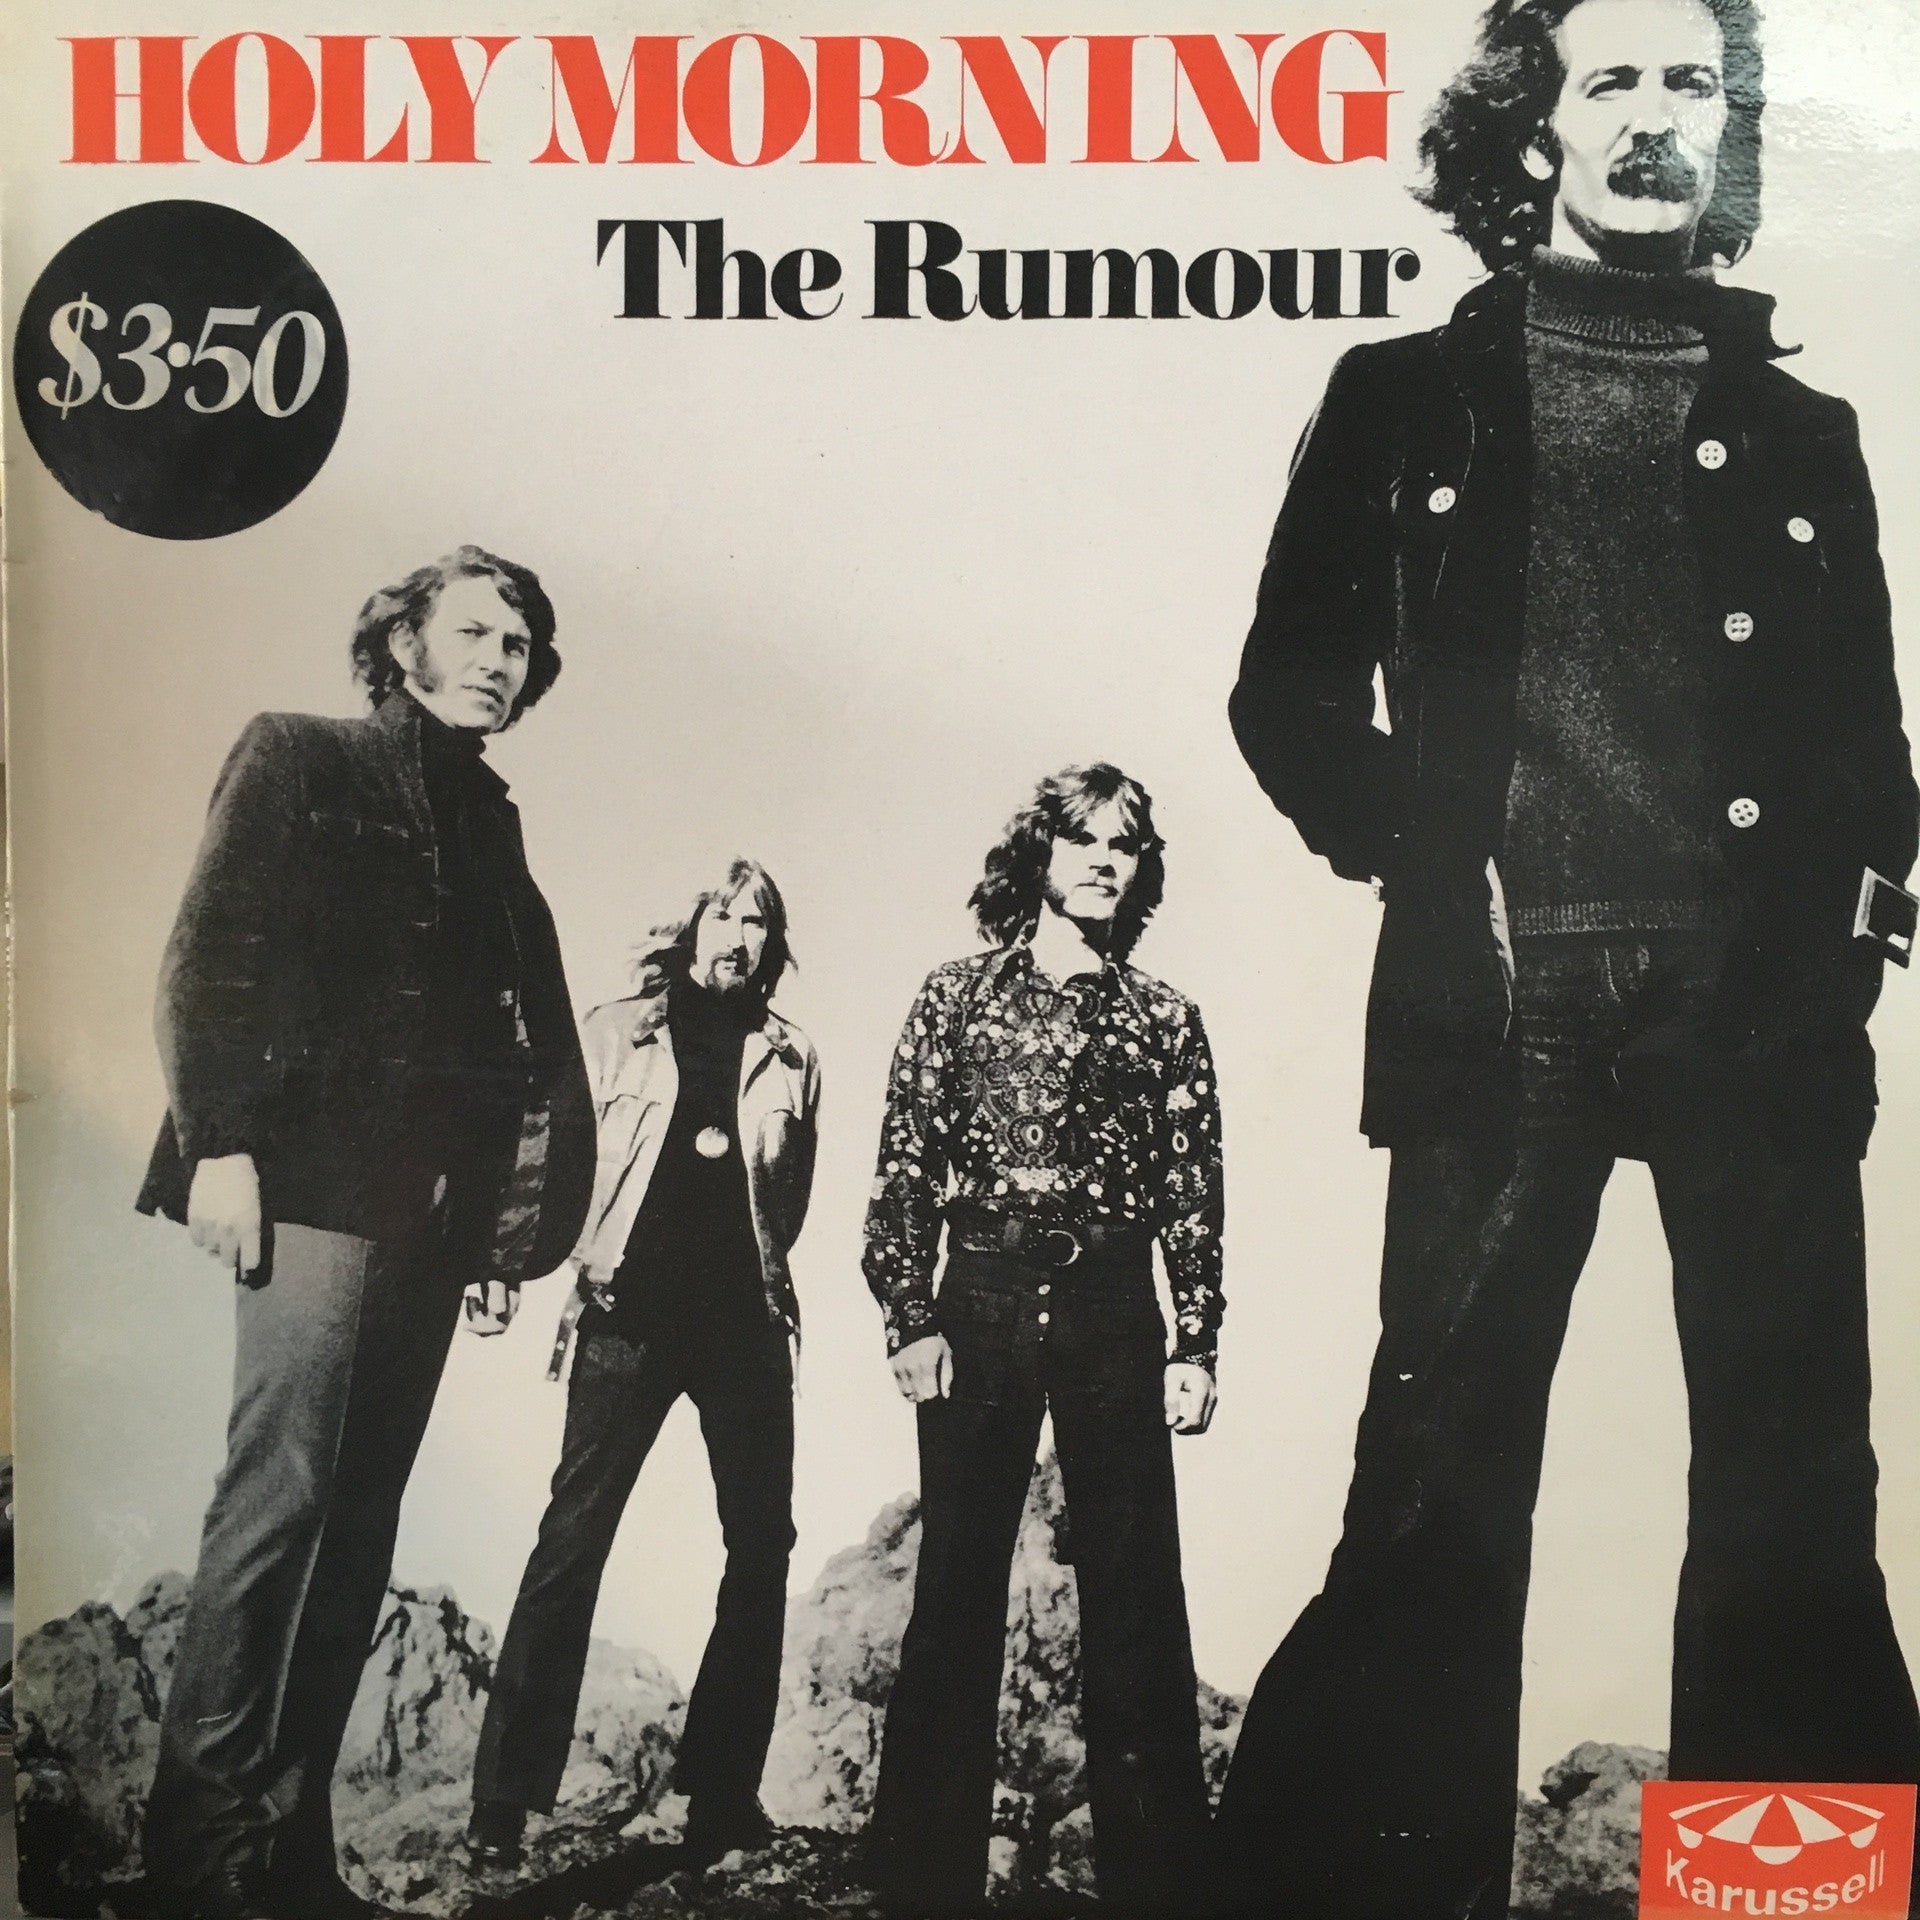 RUMOUR THE-HOLY MORNING LP VG COVER VG+